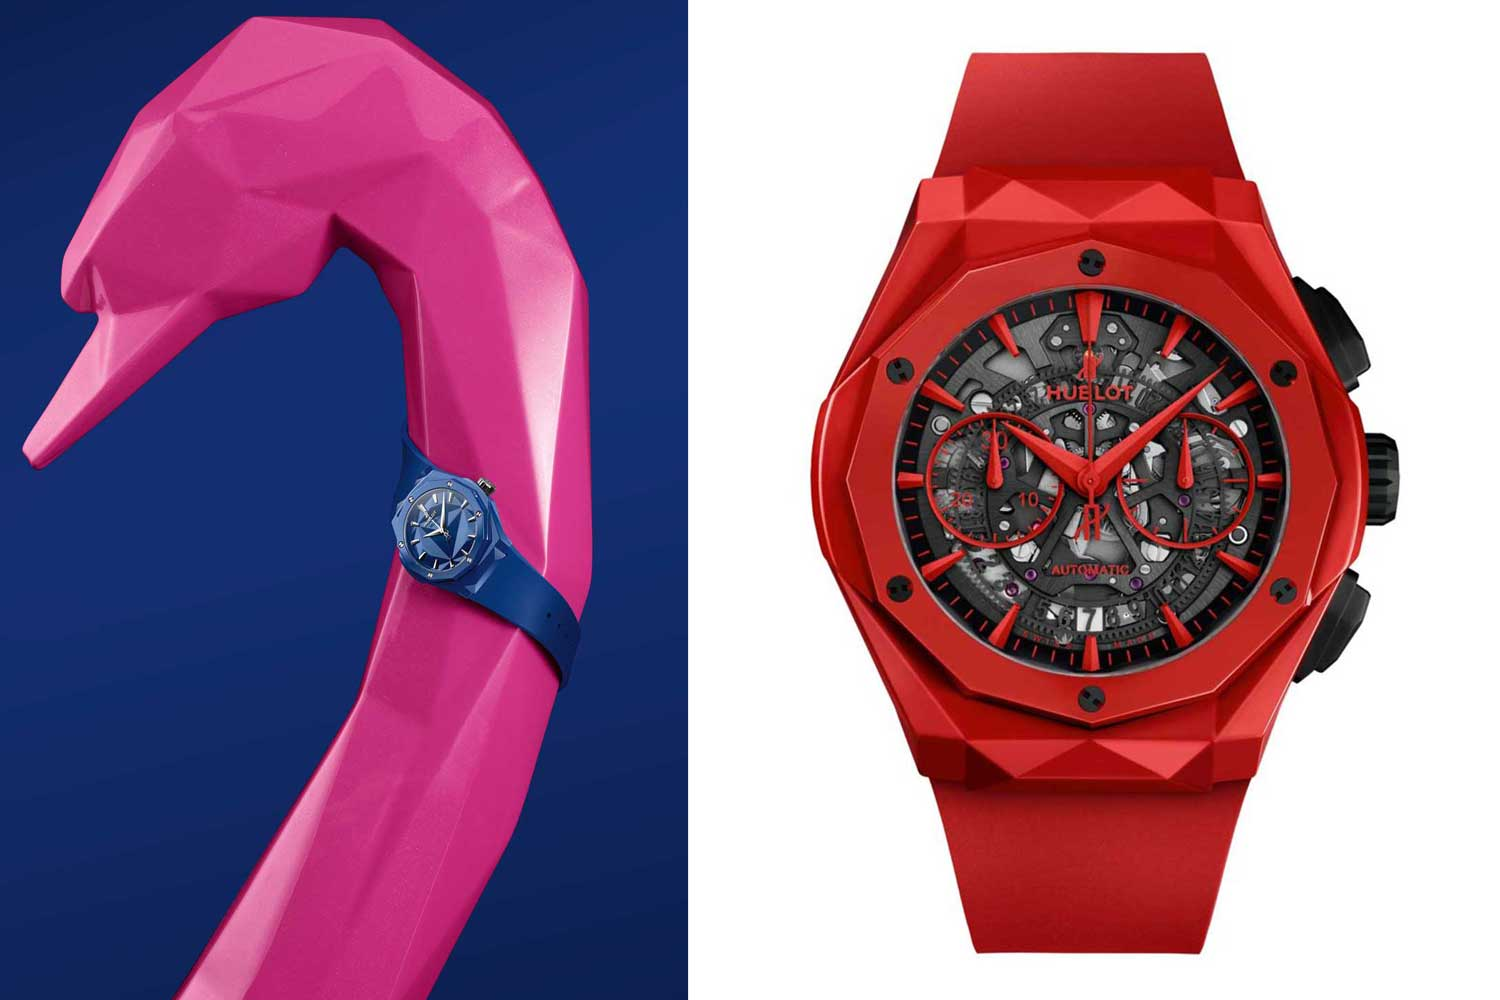 Sleek, glossy and reassuringly luxurious, Hublot's Orlinski watches are markedly different from the brand's other ceramic offerings. Seen here are the Hublot Classic Fusion 40mm Orlinski Edition in blue ceramic (left) and Hublot Classic Fusion Chronograph Orlinski Red Ceramic (right)